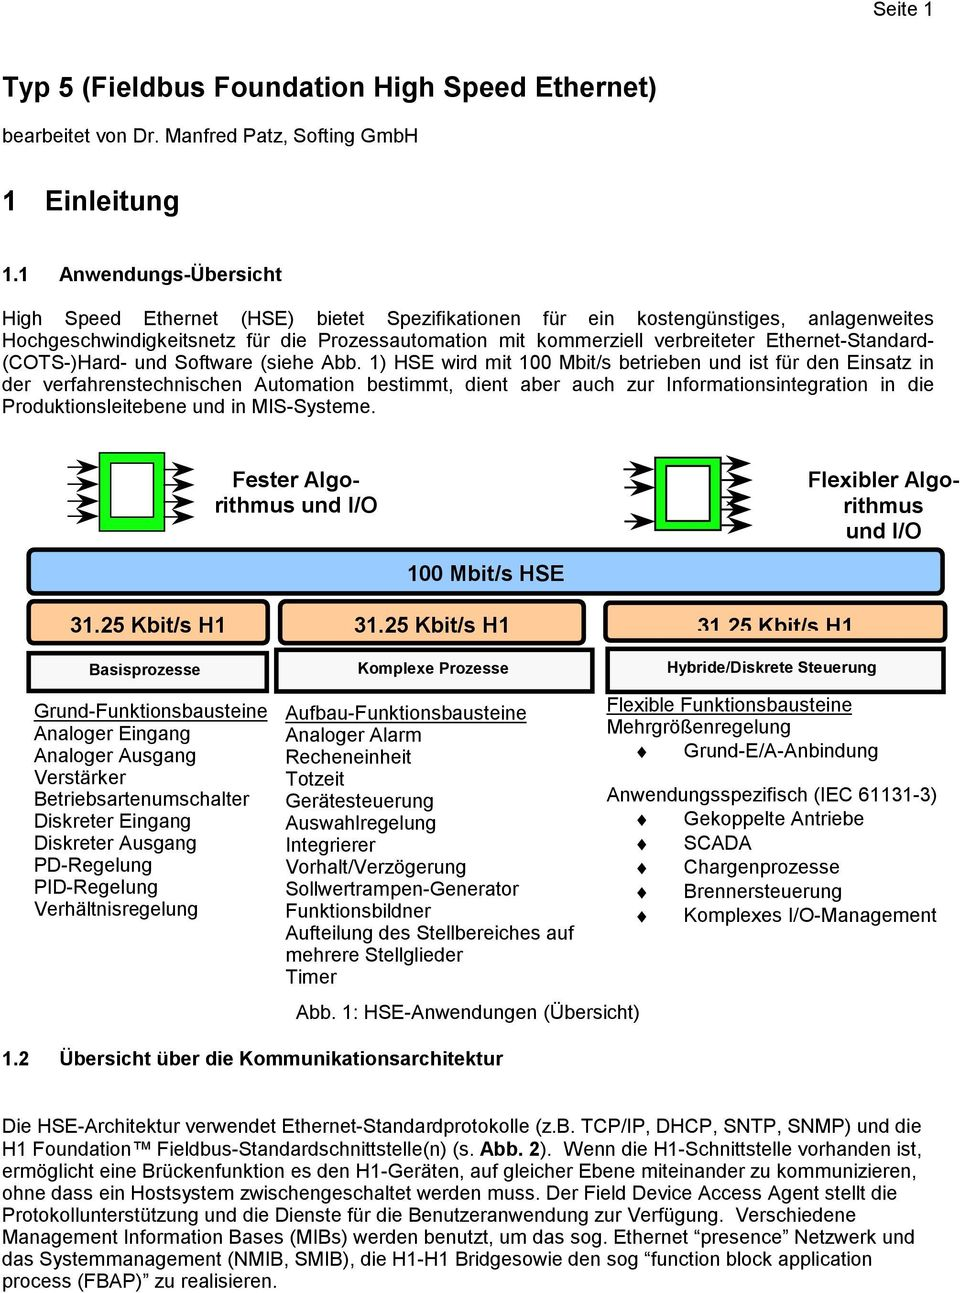 Ethernet-Standard- (COTS-)Hard- und Software (siehe Abb.